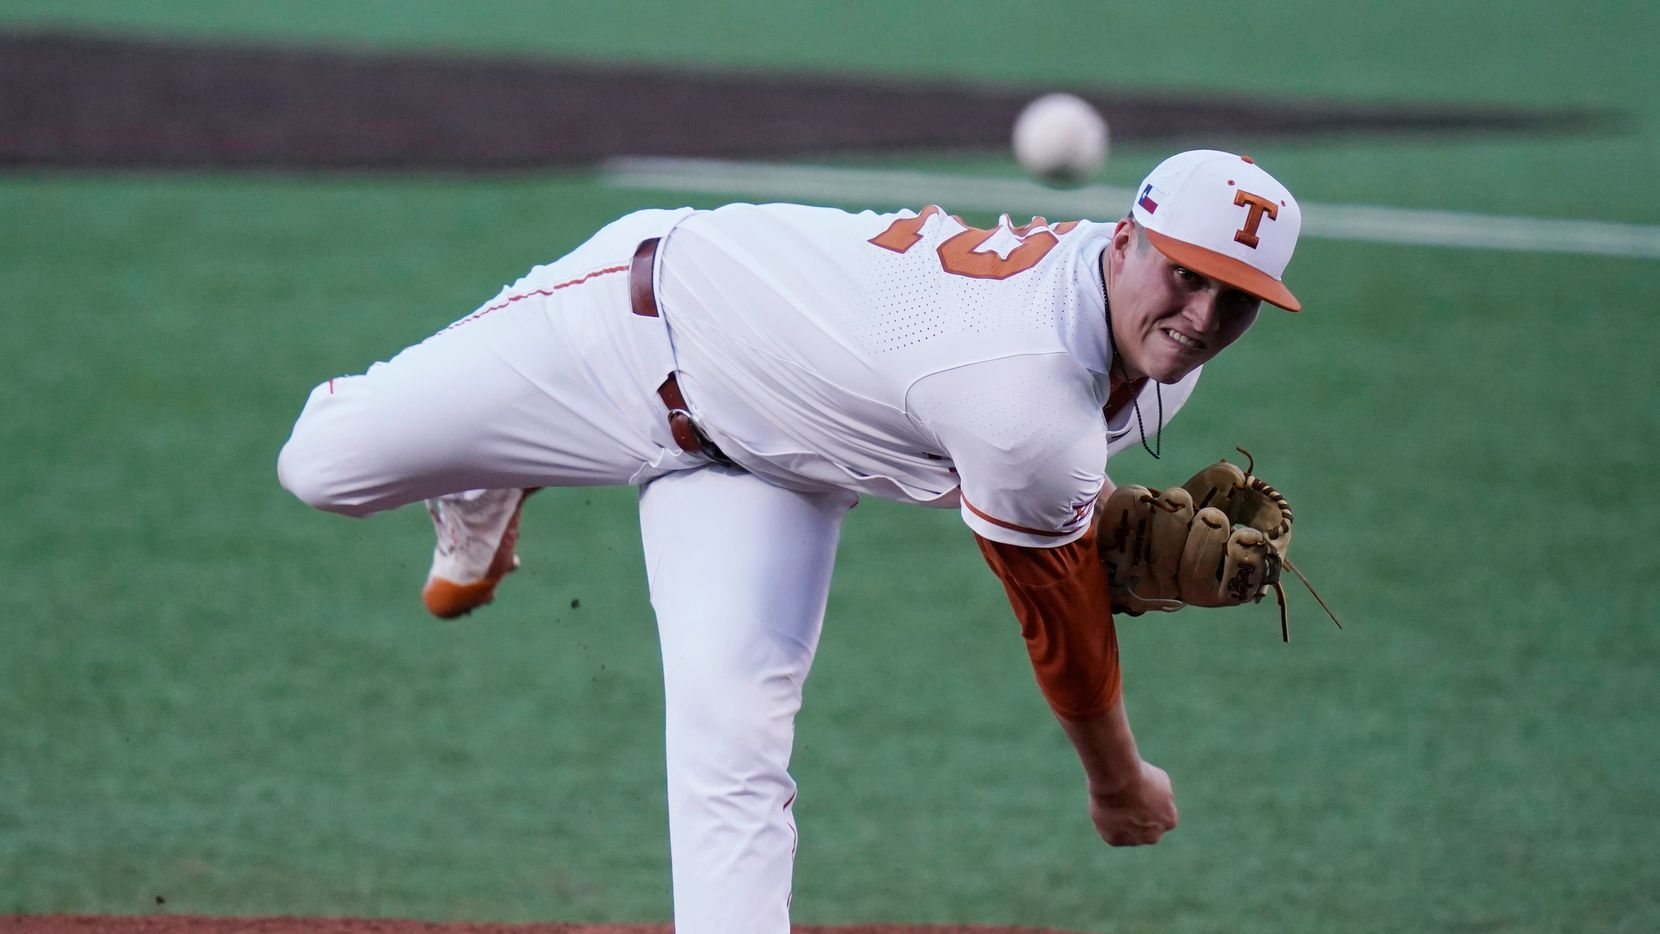 Texas' Ty Madden delivers a pitch against Arizona State in the first inning of Game 4 of the NCAA college baseball regional tournament, Saturday, June 5, 2021, in Austin, Texas.